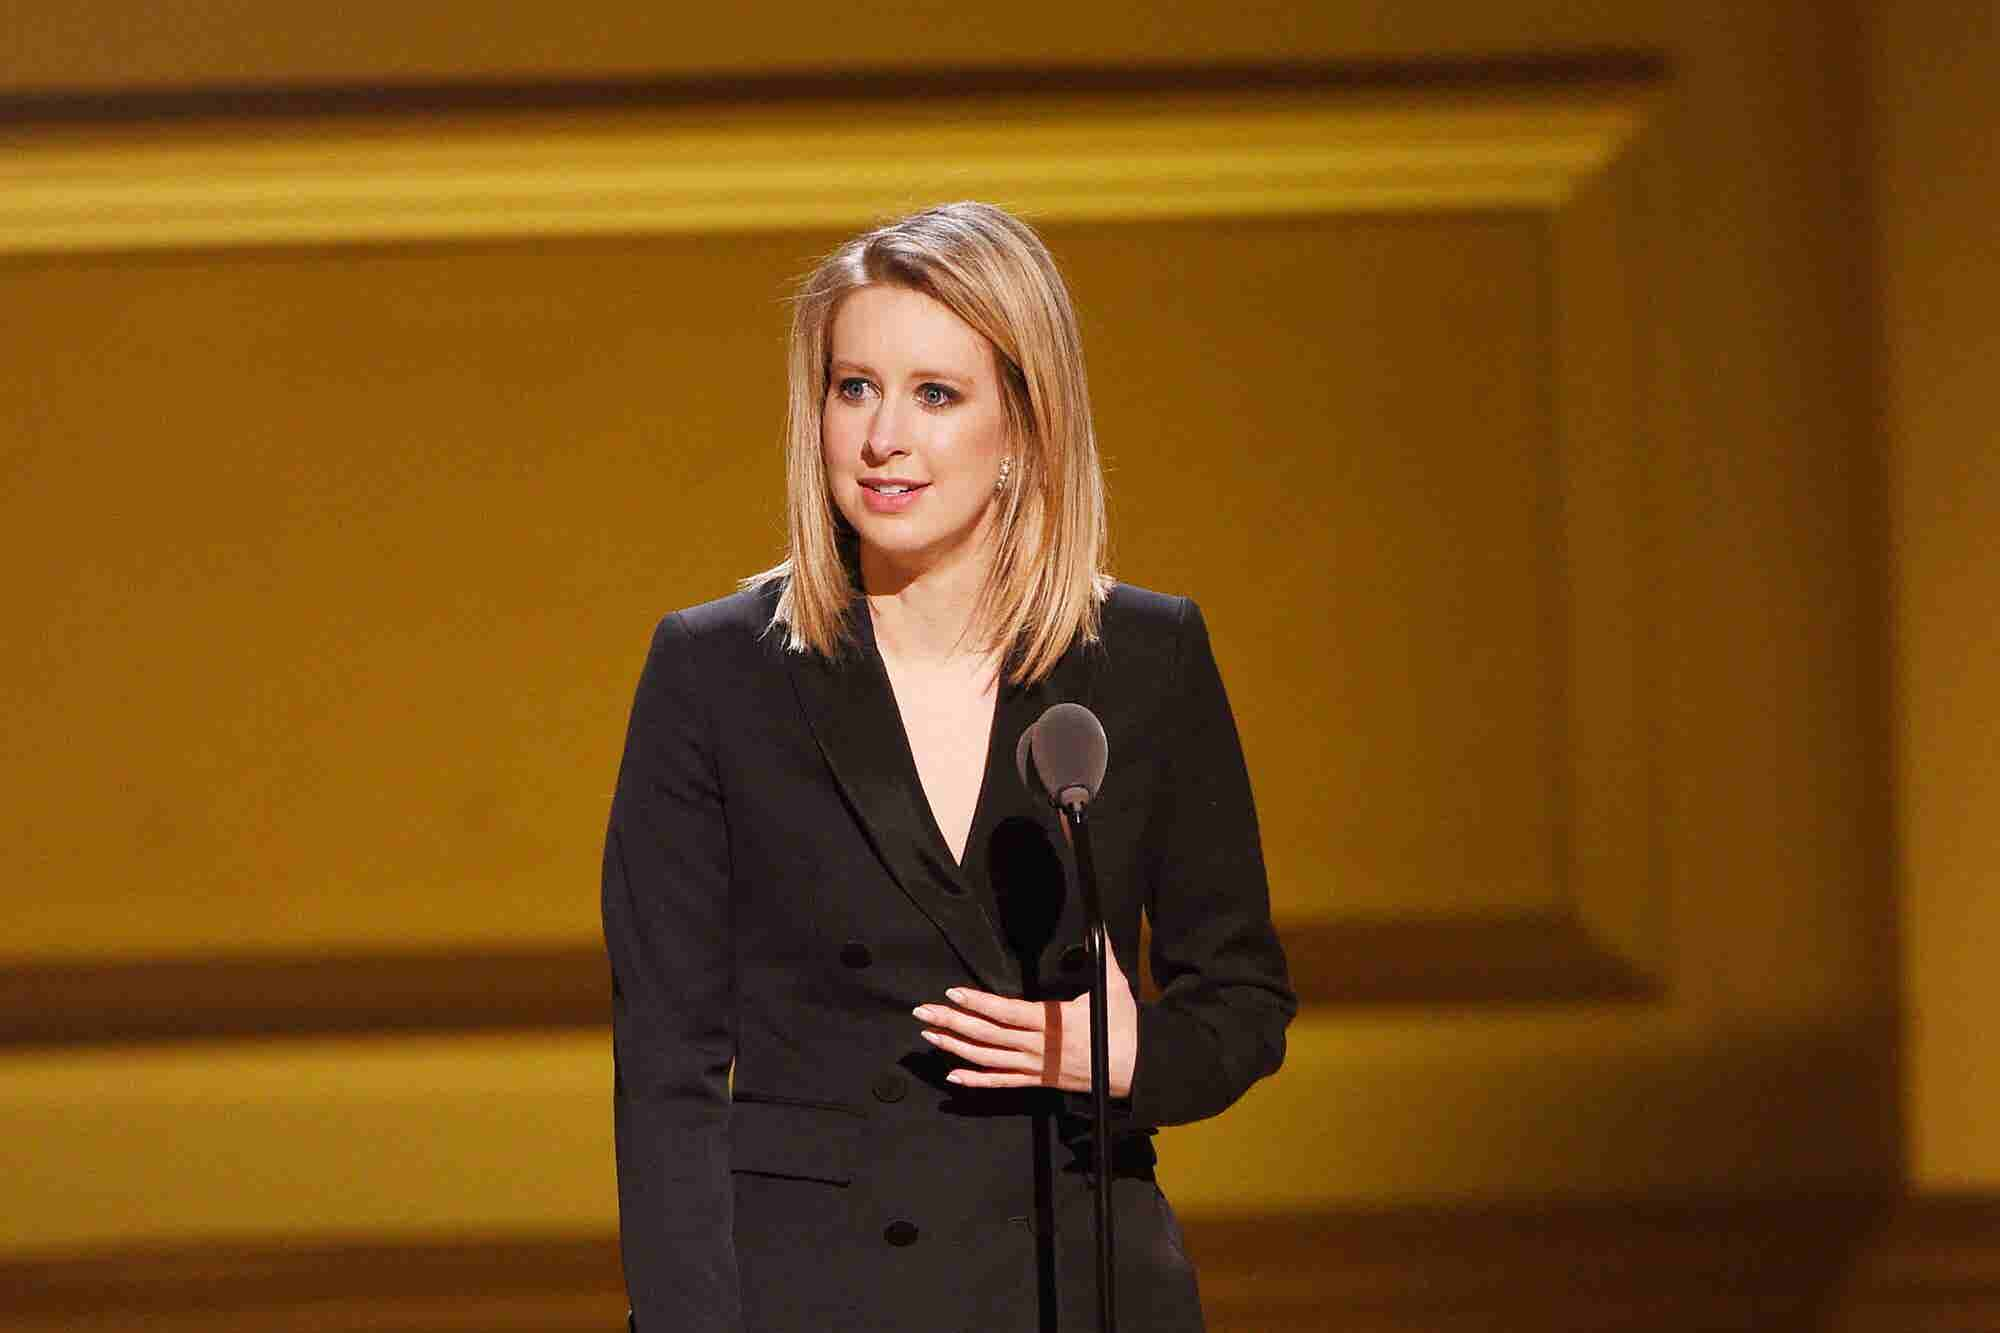 8 Tips Entrepreneurs Can Take Away From the Theranos Scam and Its Aftermath